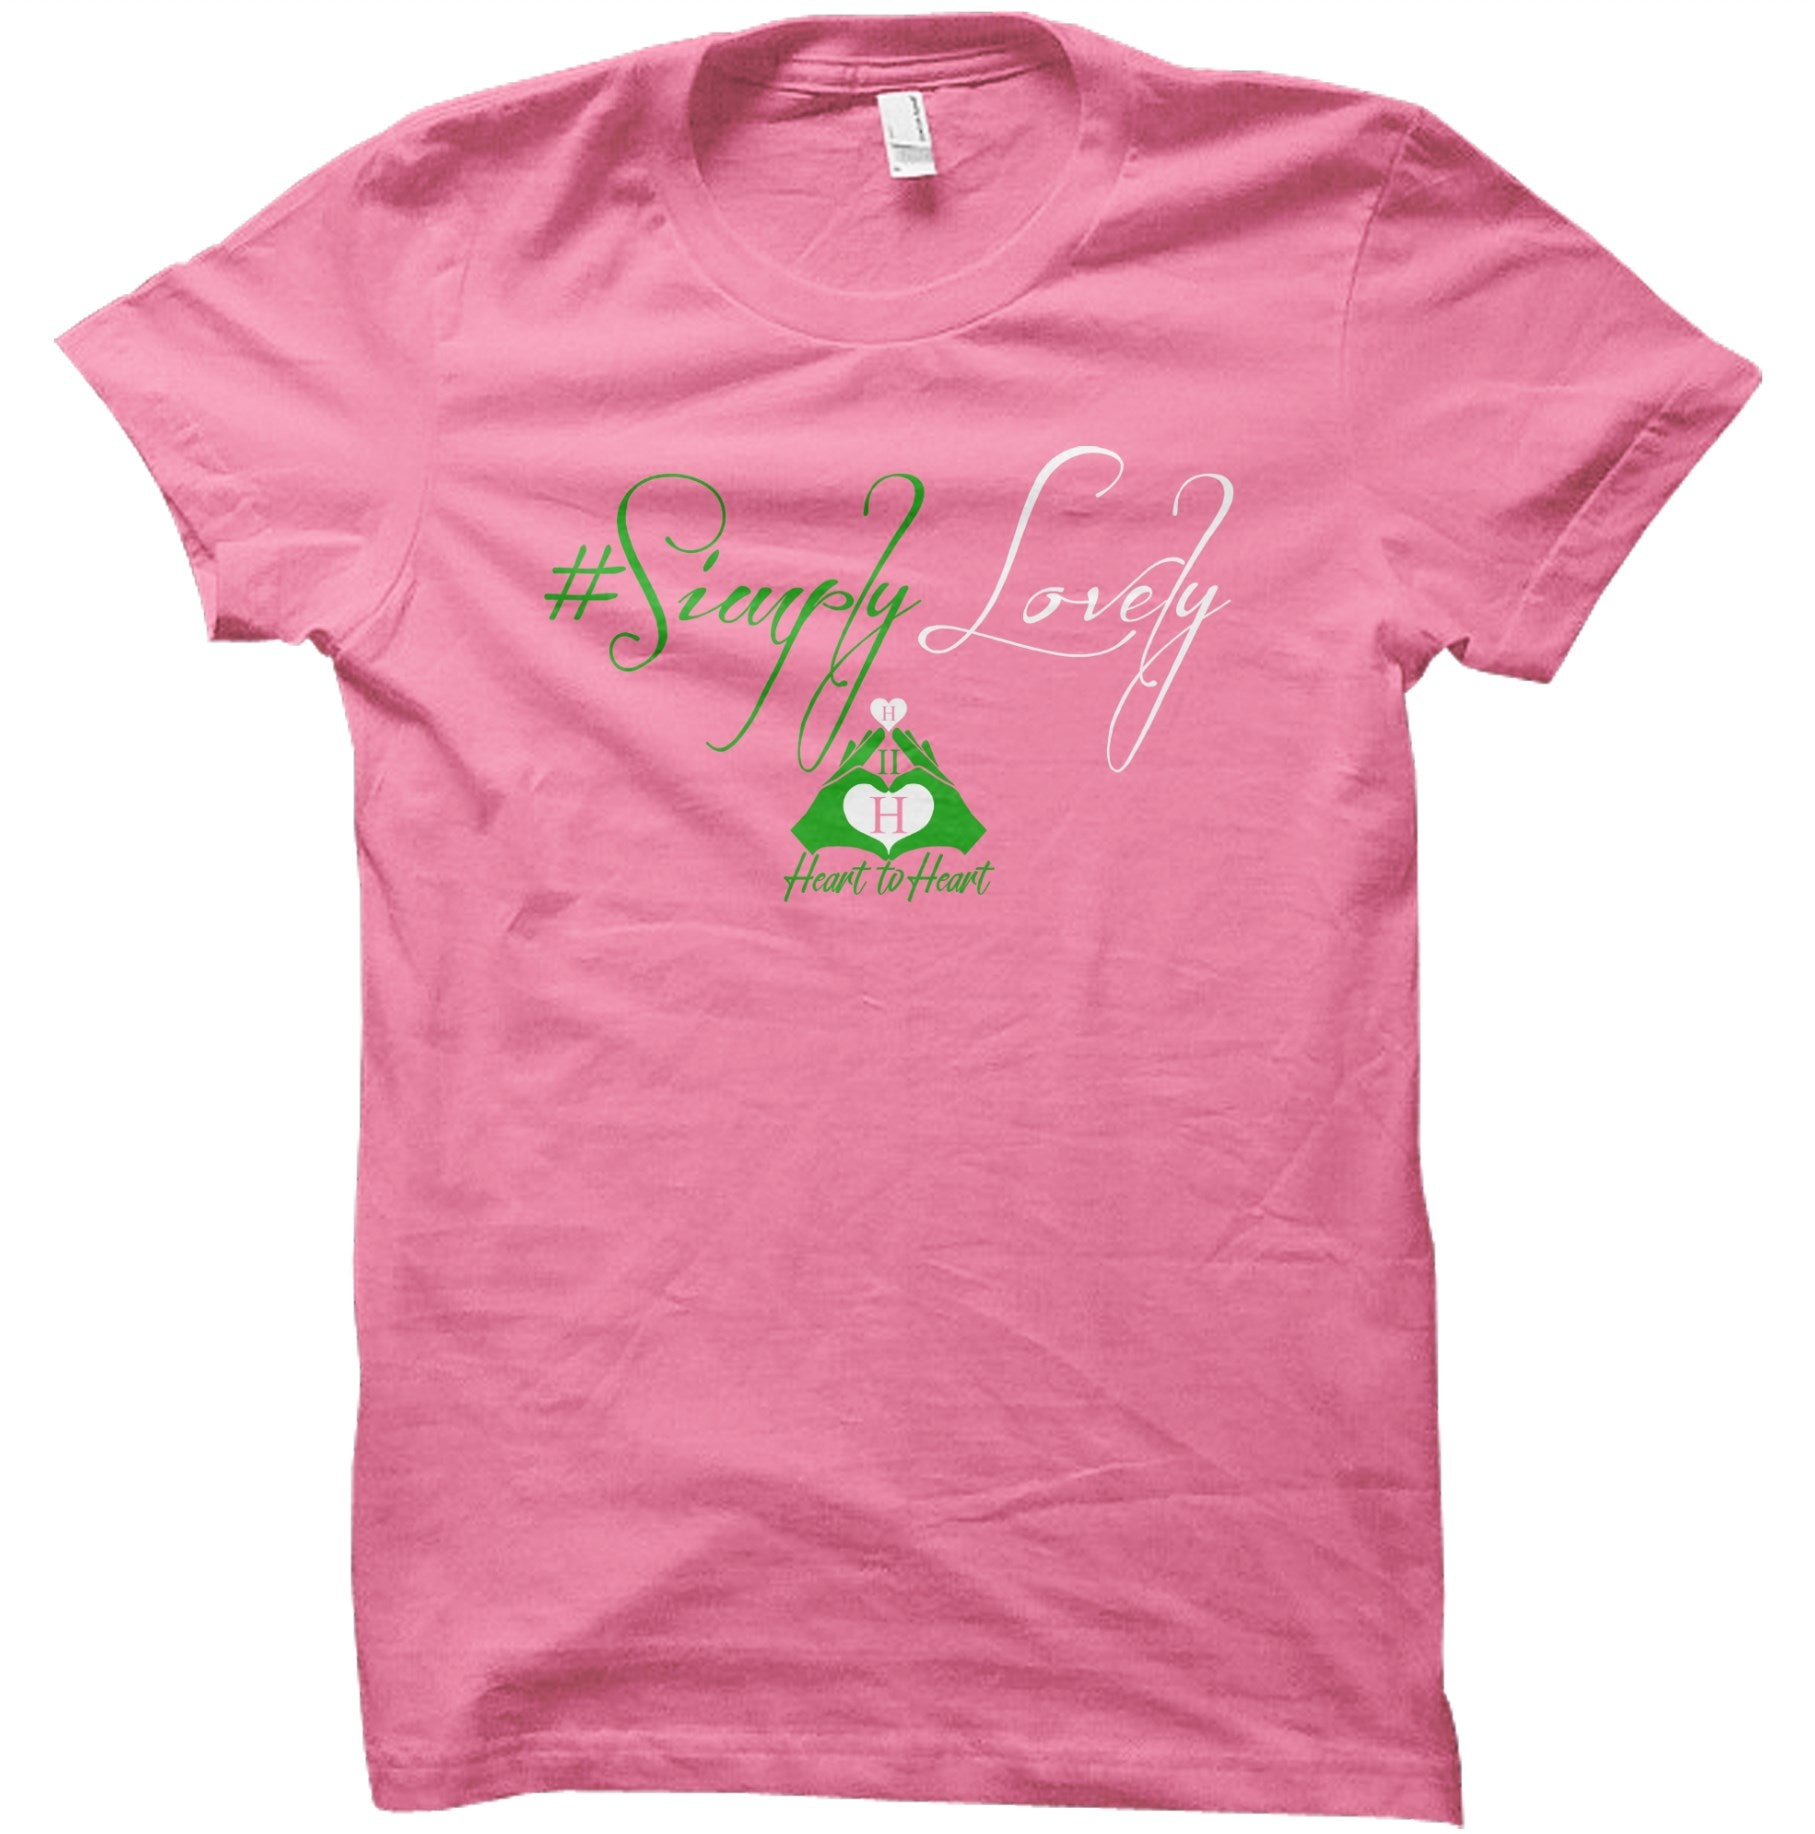 Simply Lovely Women's Fit Tee - (2 Color Options)